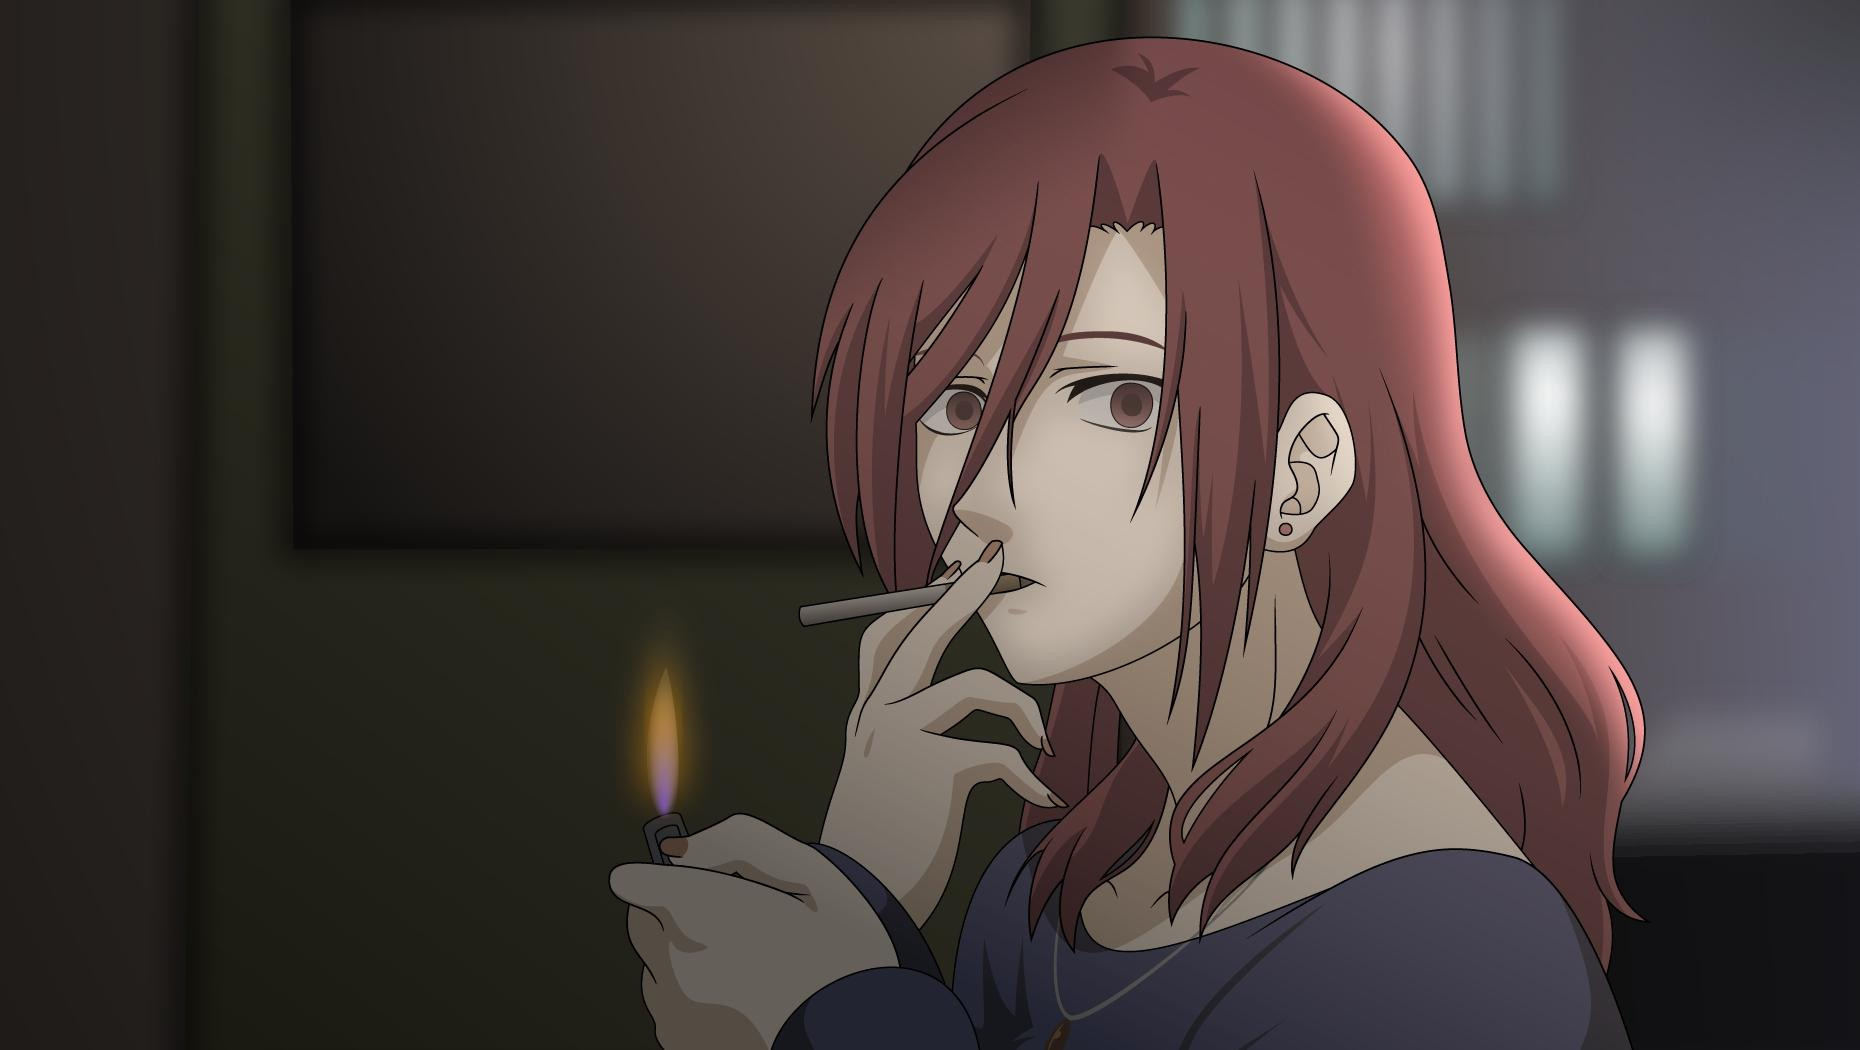 kara no kyoukai cigarettes aozaki touko High Quality Wallpapers,High